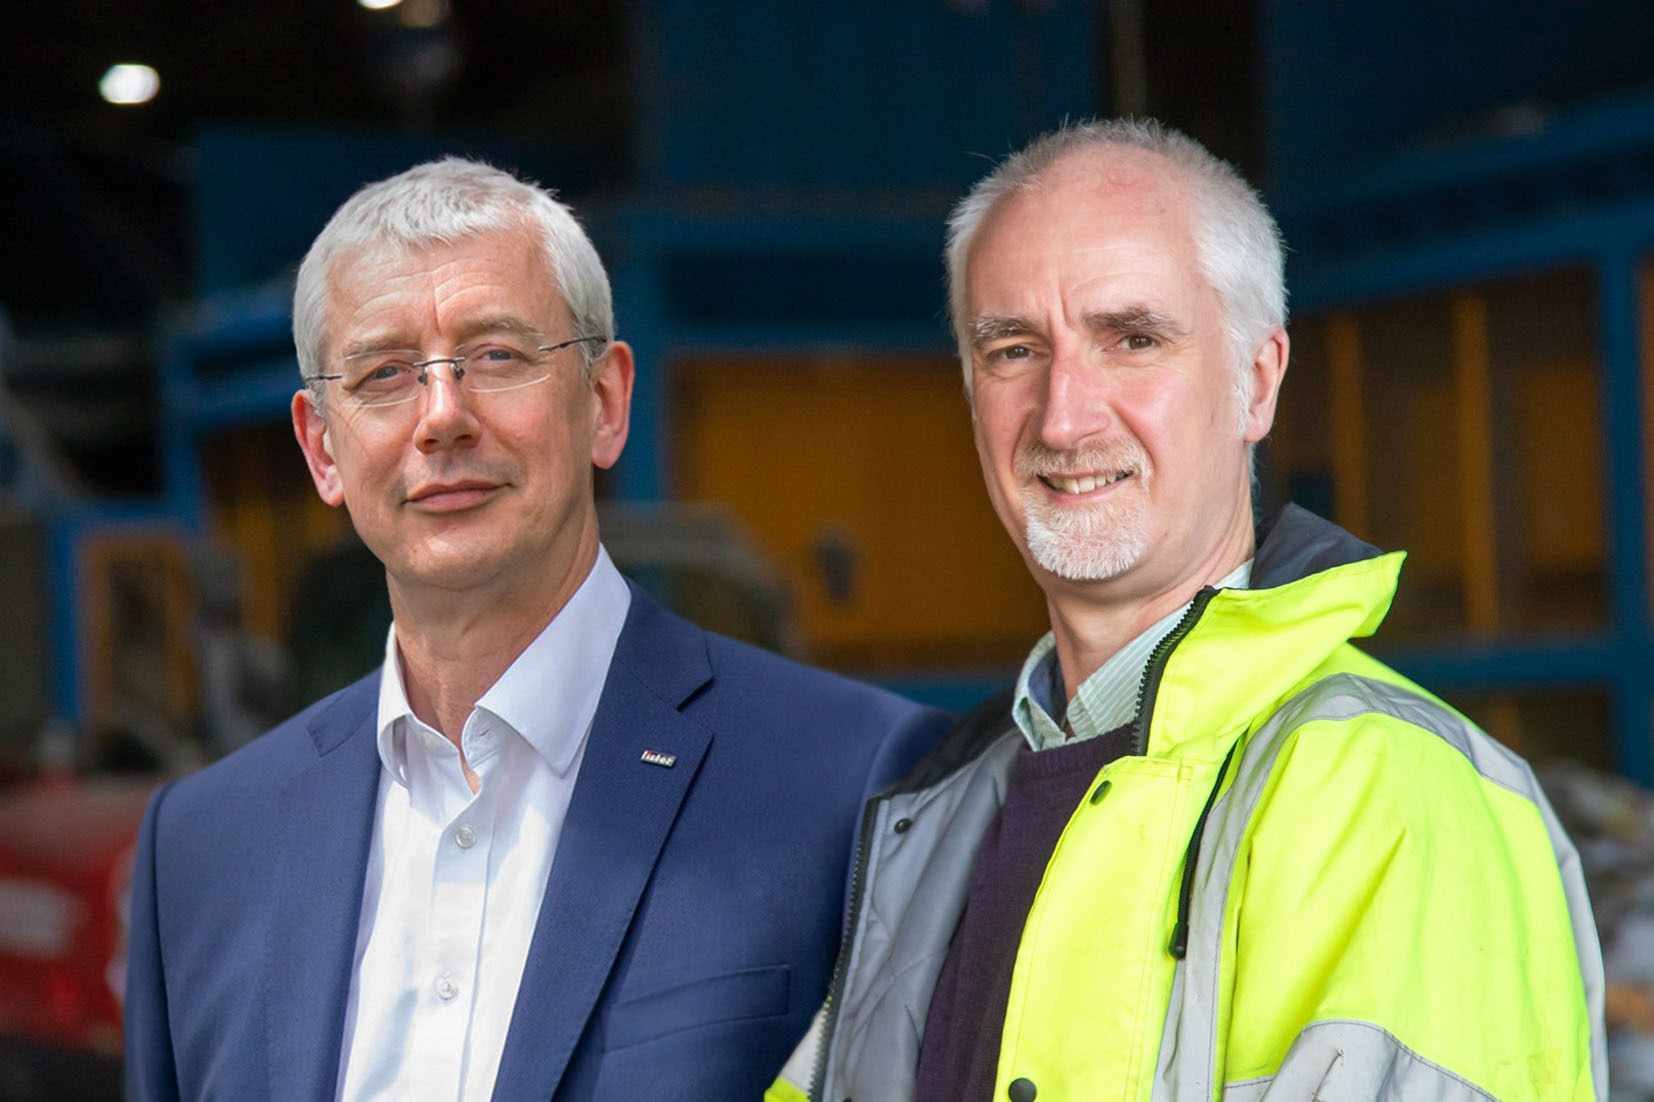 Manufacturing Assembly Network leads the industrial fightback with £10m sales boost